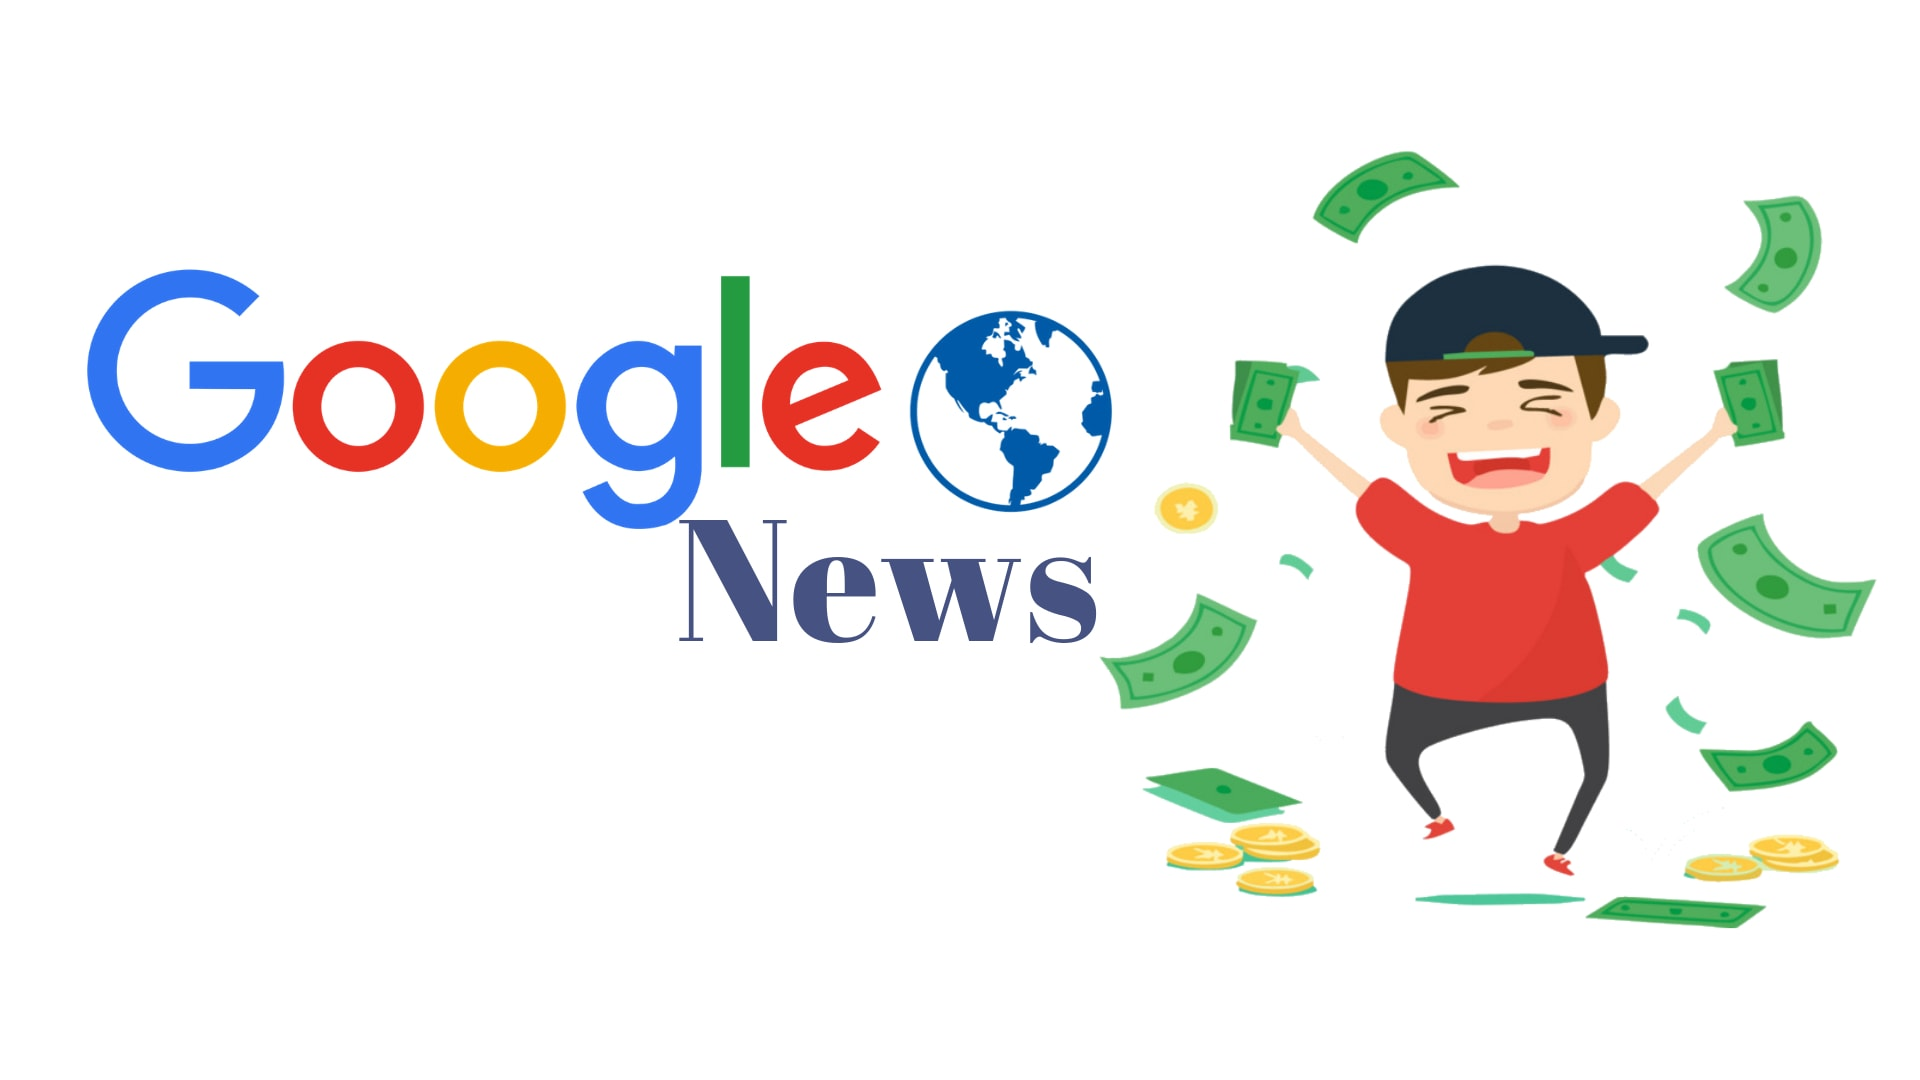 google news - 10 Legit Ways to Make Money Online With Google